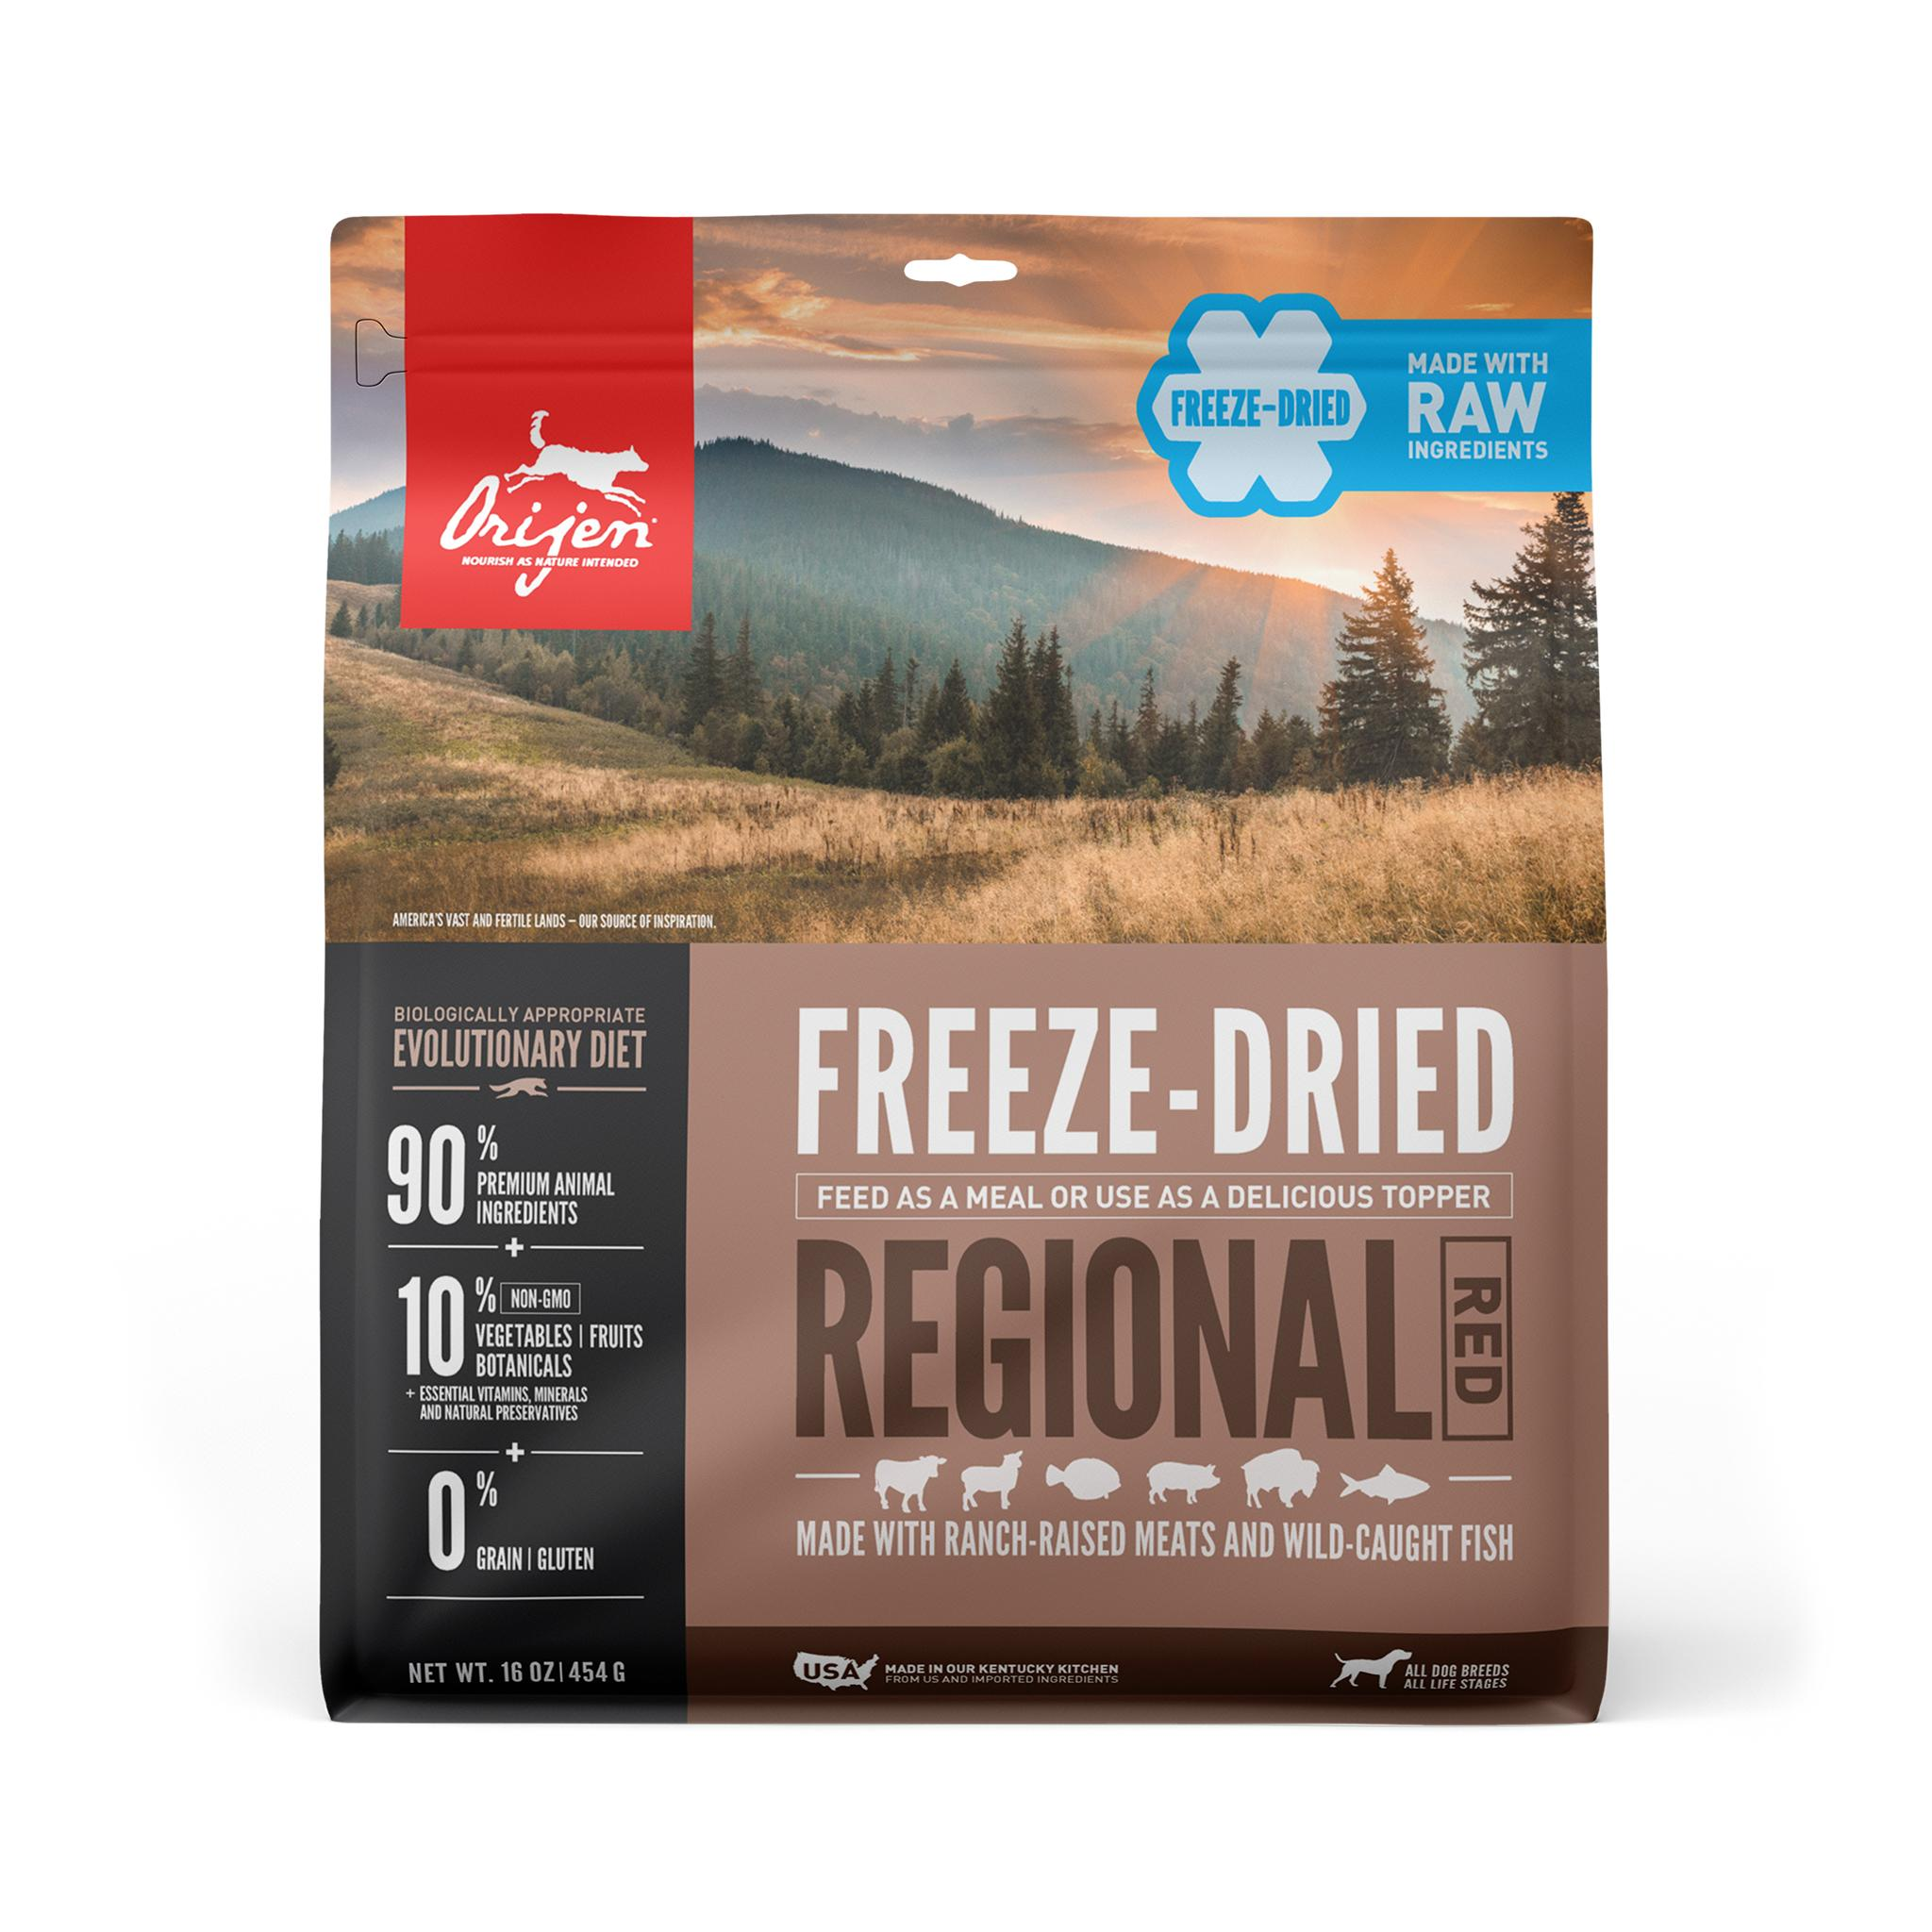 ORIJEN Regional Red Grain-Free Freeze-Dried Dog Food, 16-oz